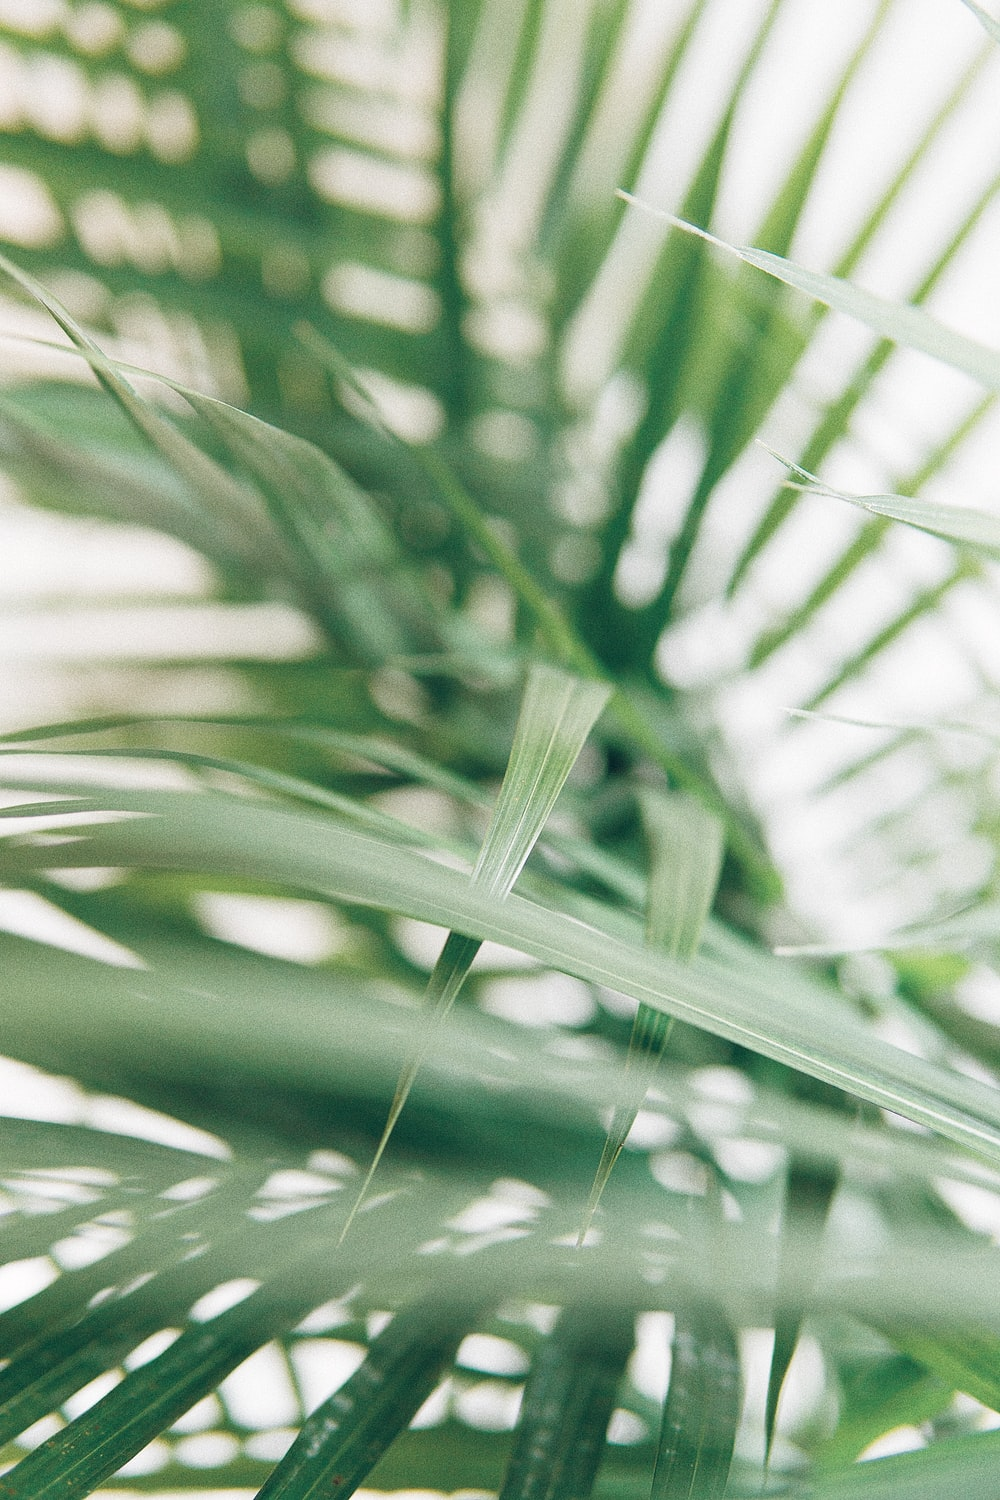 closeup photography of green palm leaves